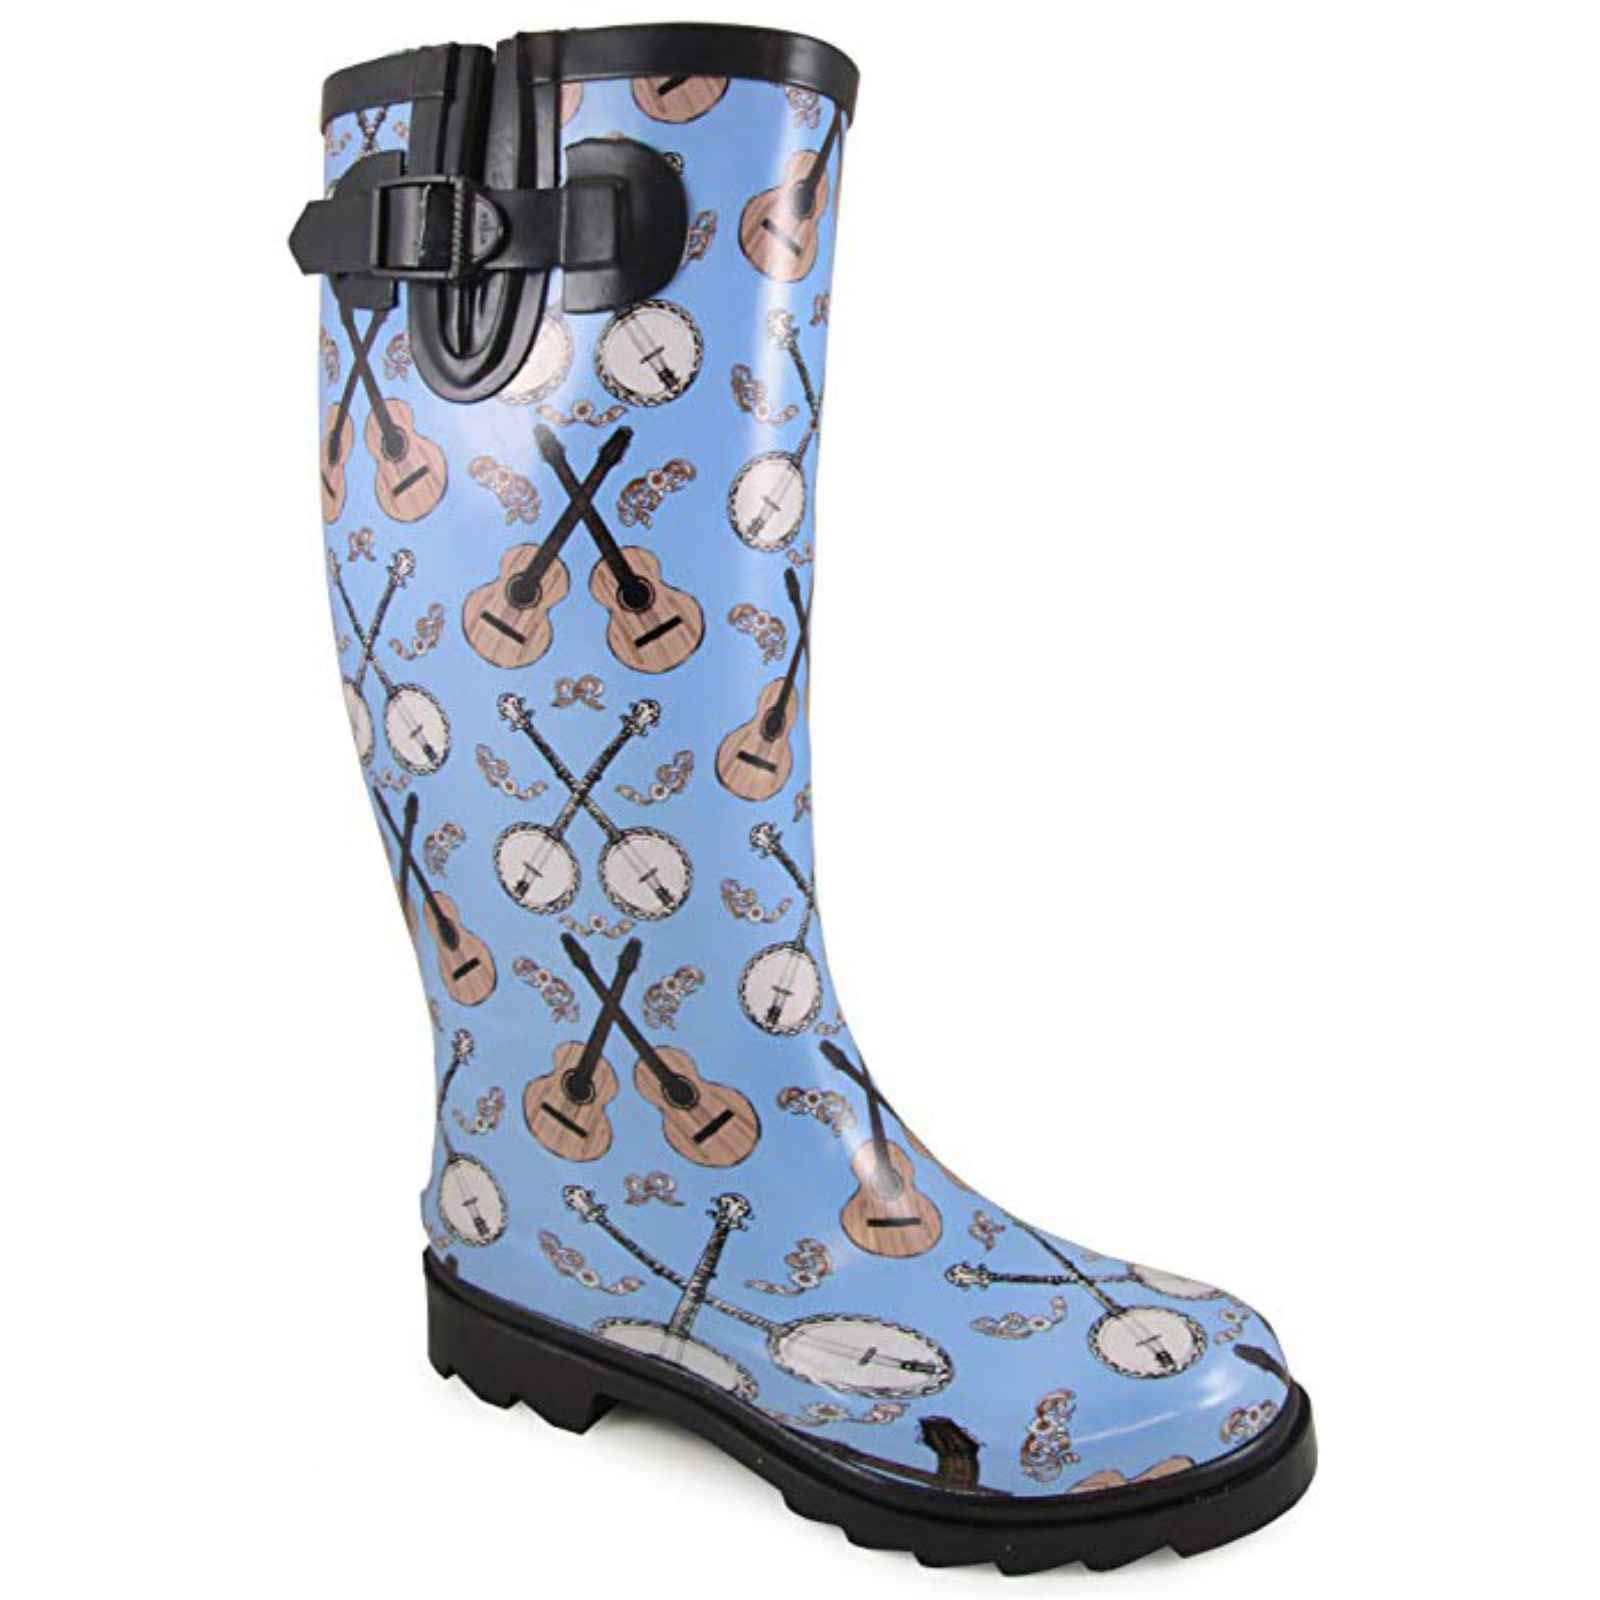 Smoky Mountain Womens Banjo Blue Rubber Rain Boots 11 M